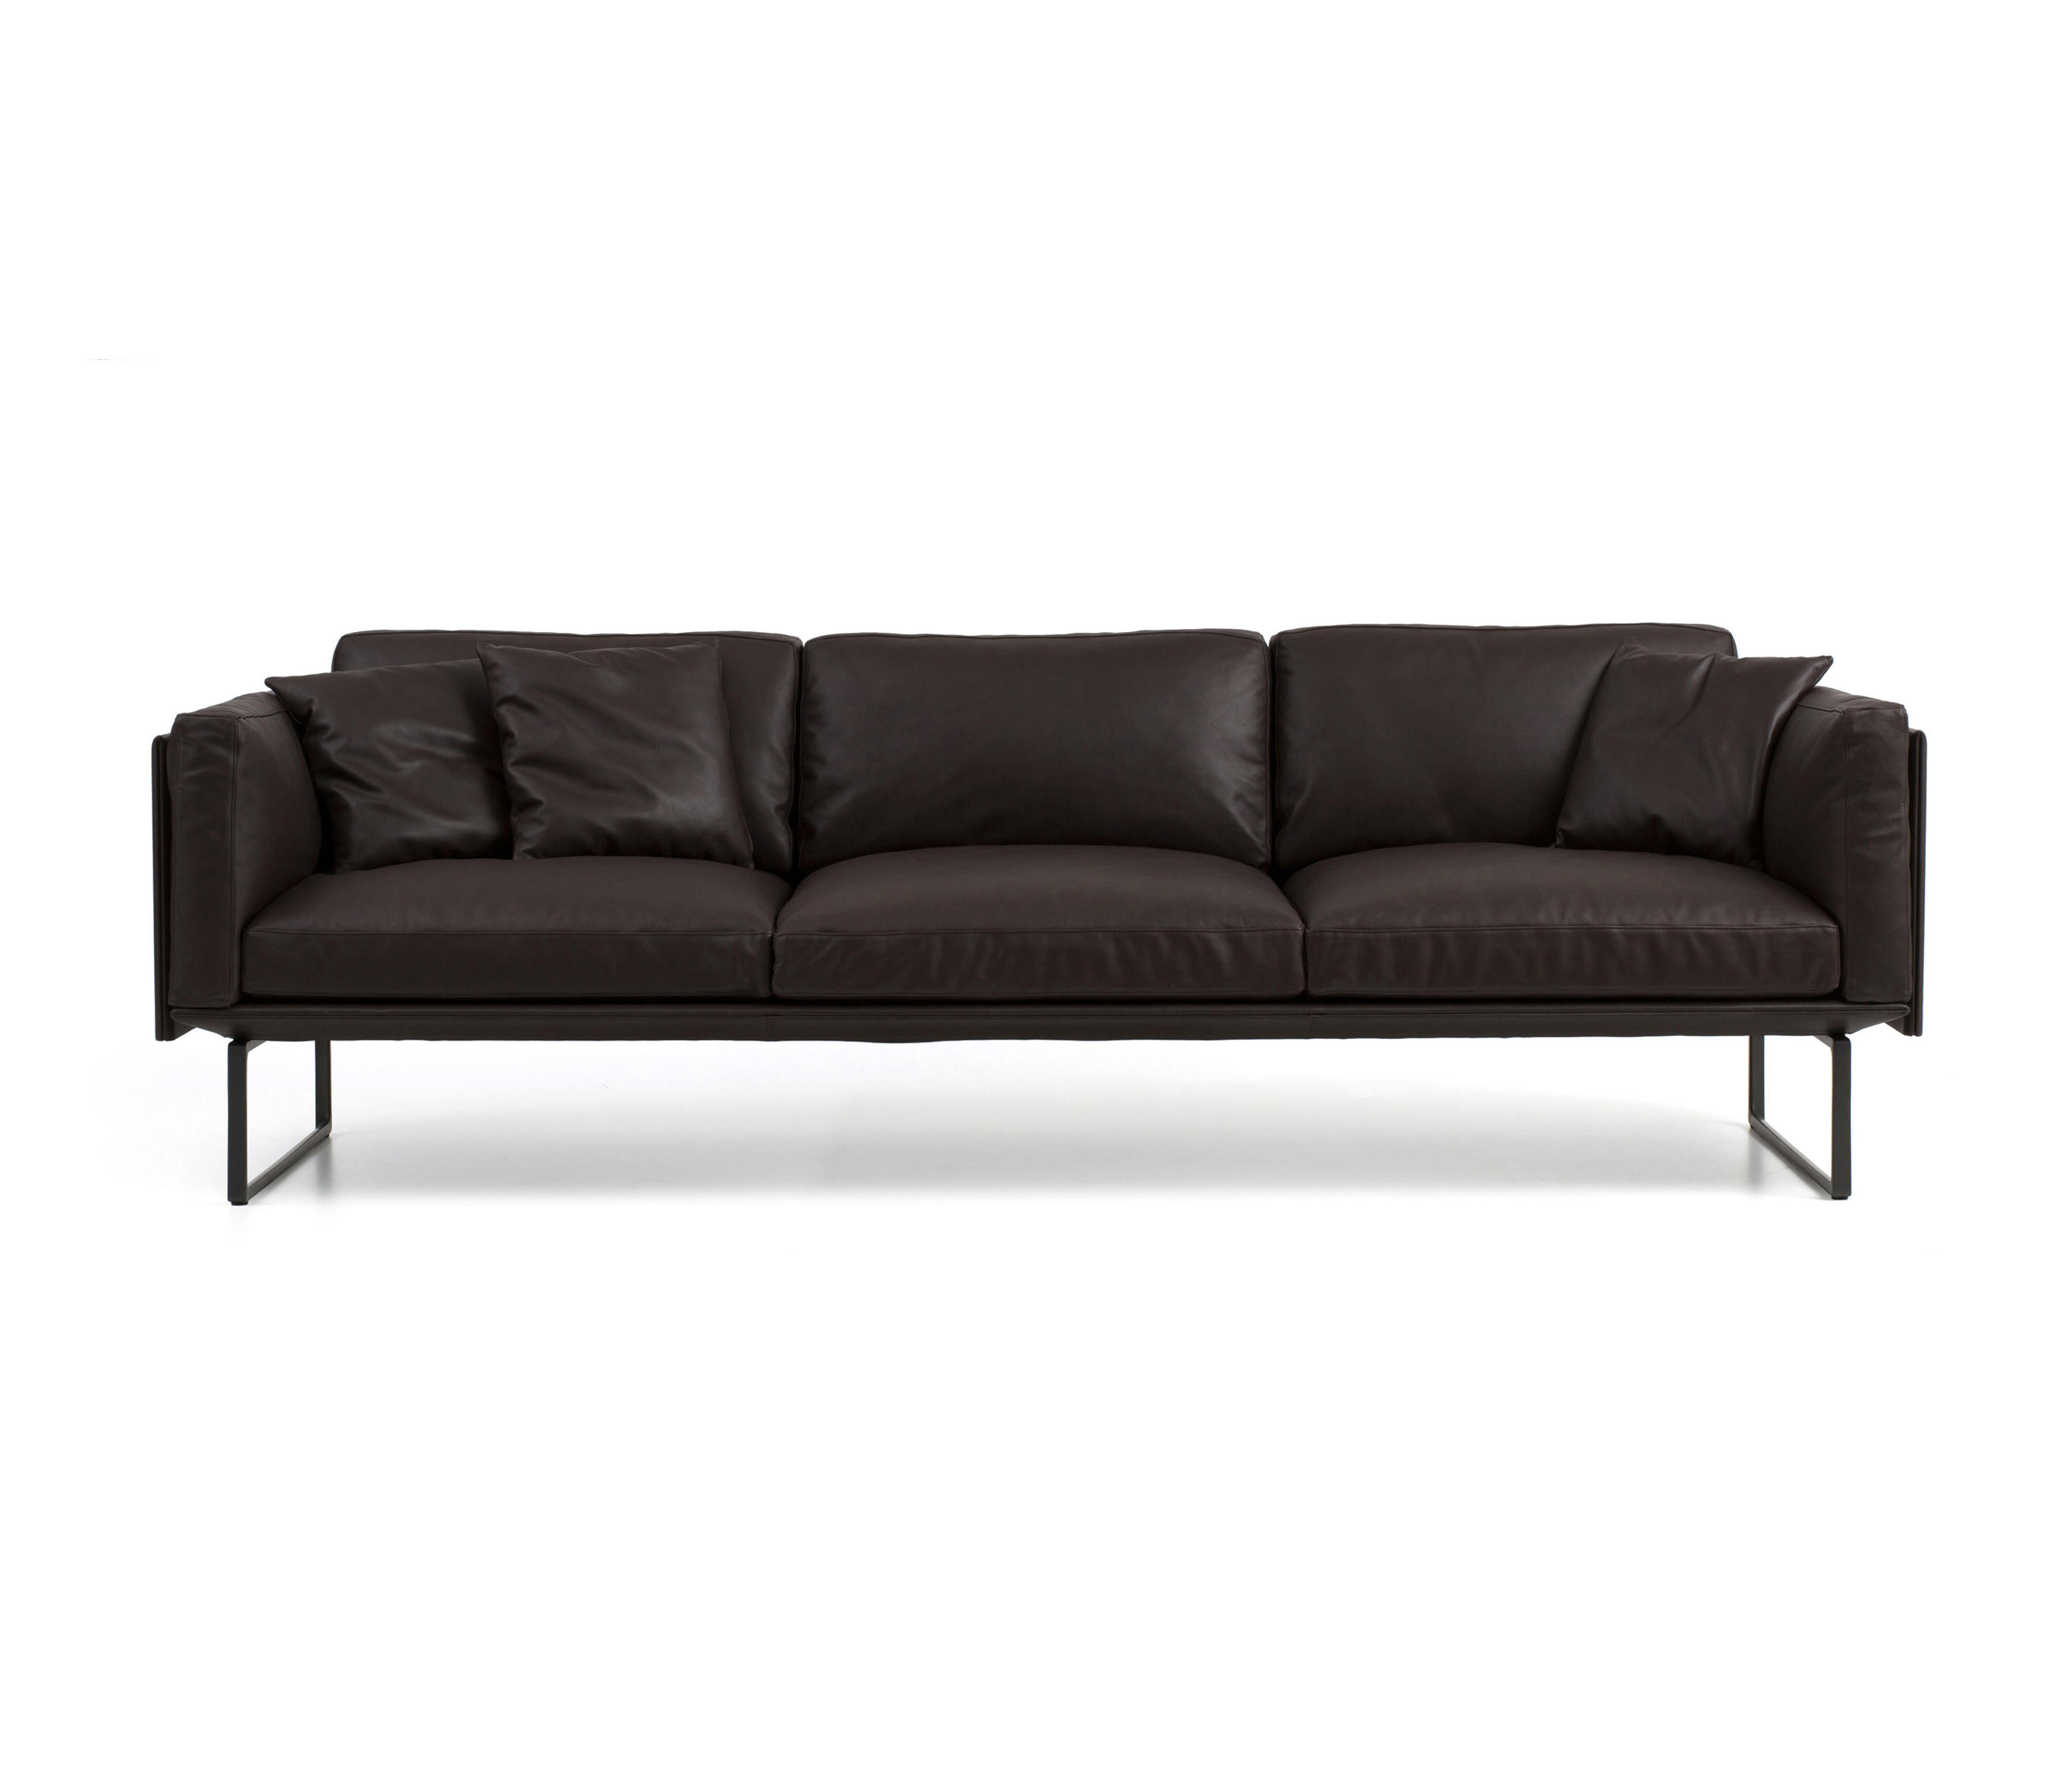 202 8 lounge sofas from cassina architonic for Sofa 8 cassina